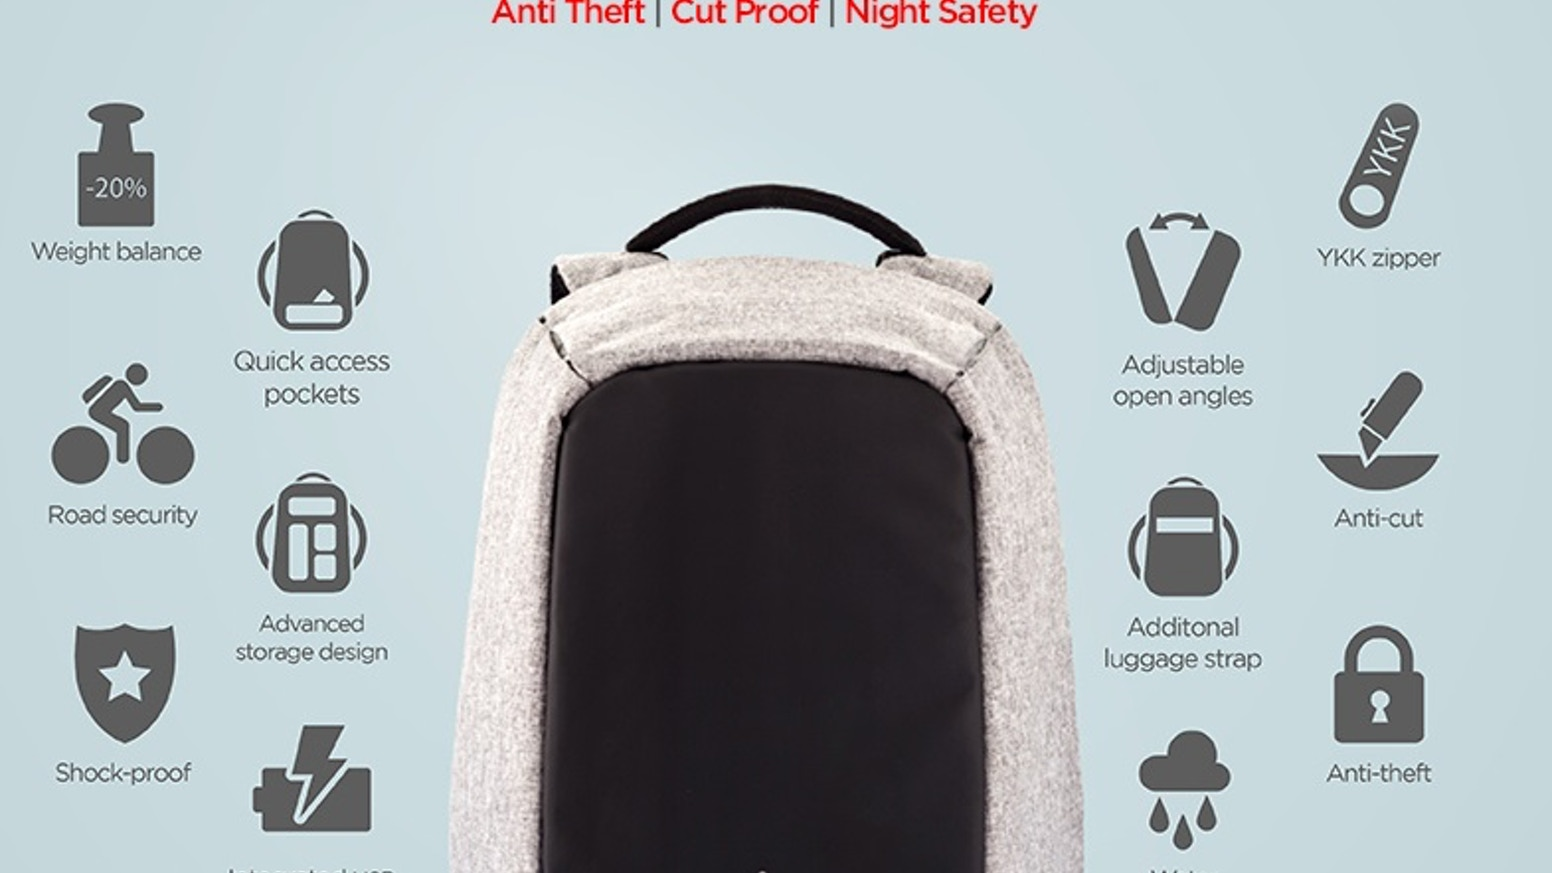 c5503b72bb99 ... the Best Anti Theft backpack by XD Design. Every day 400.000 pick  pocket incidents occur worldwide. Never worry about this happening to you